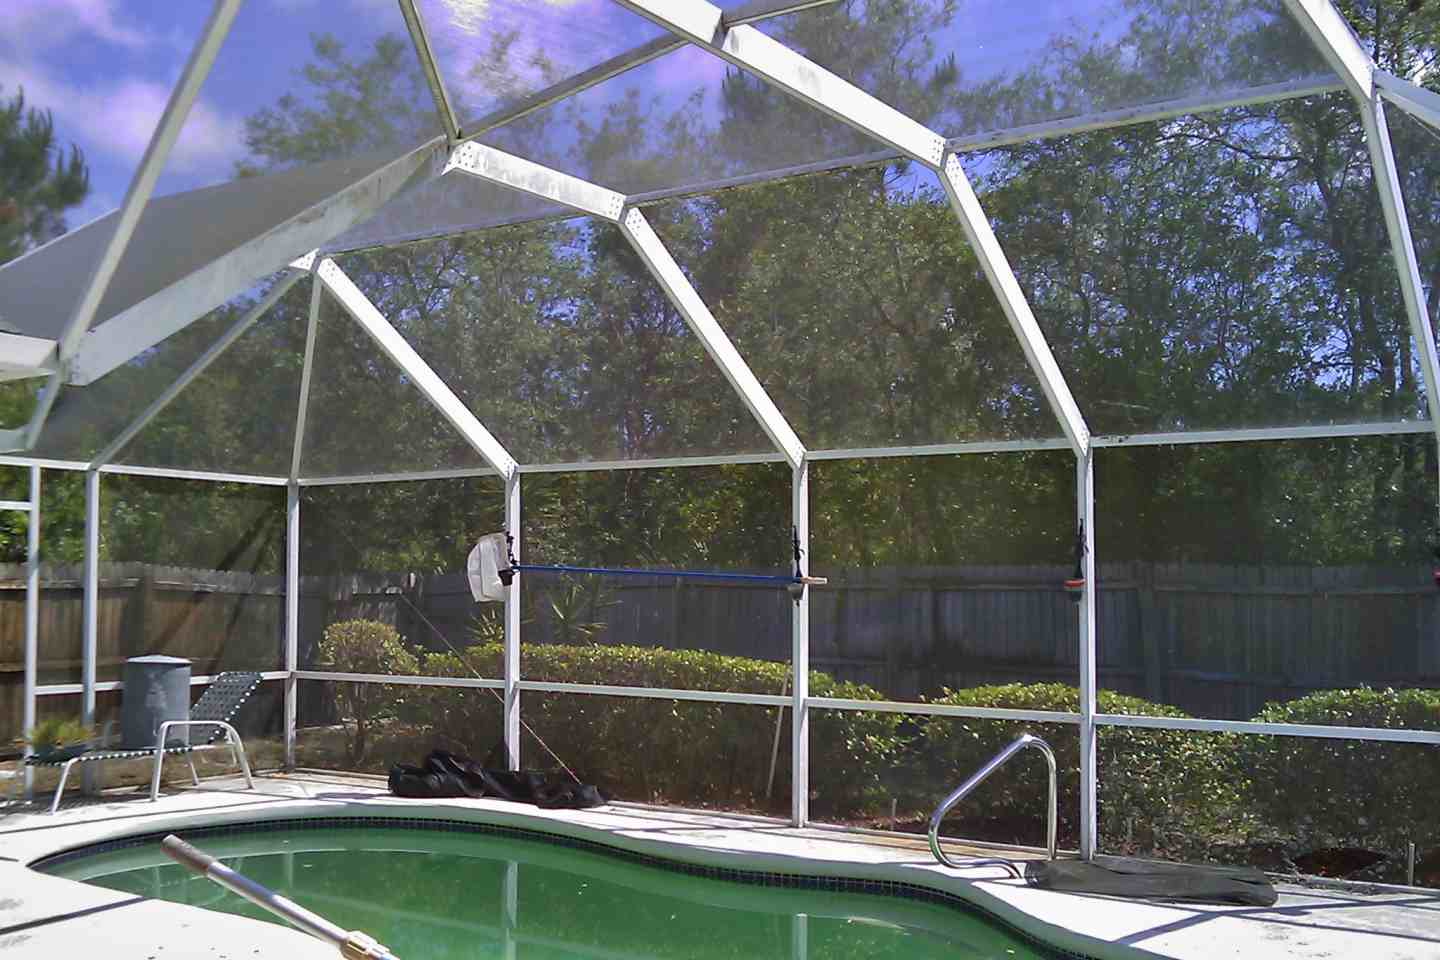 05-before-pool-enclosure-complete-re-screen.jpg